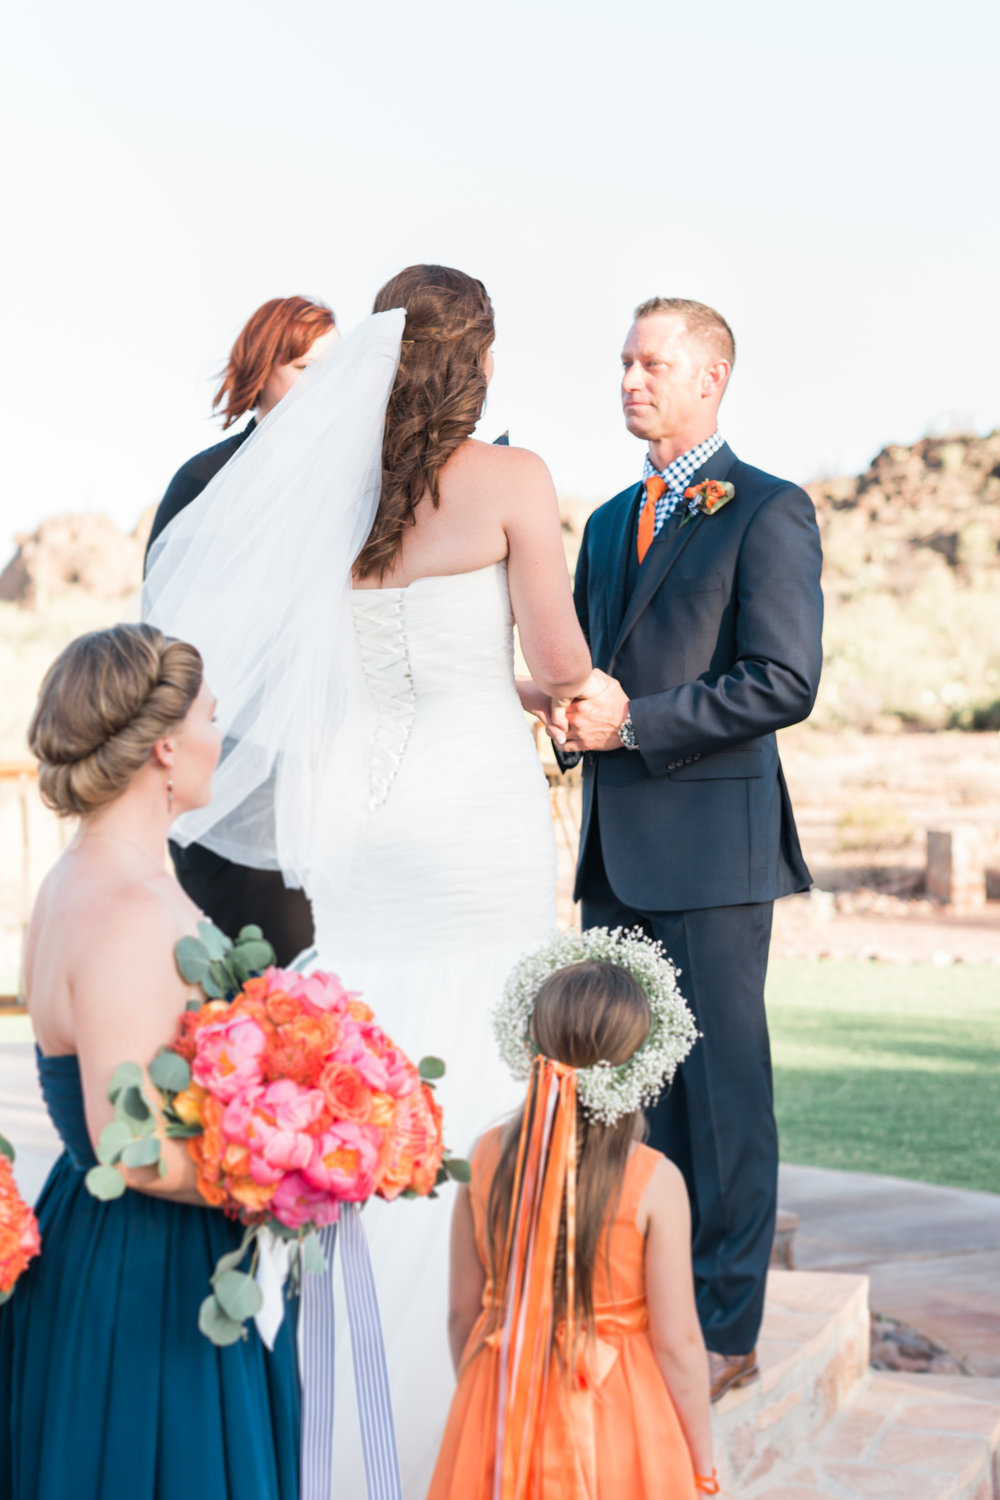 Bride and groom saying their vows to each other at their Tucson, Stardance wedding.